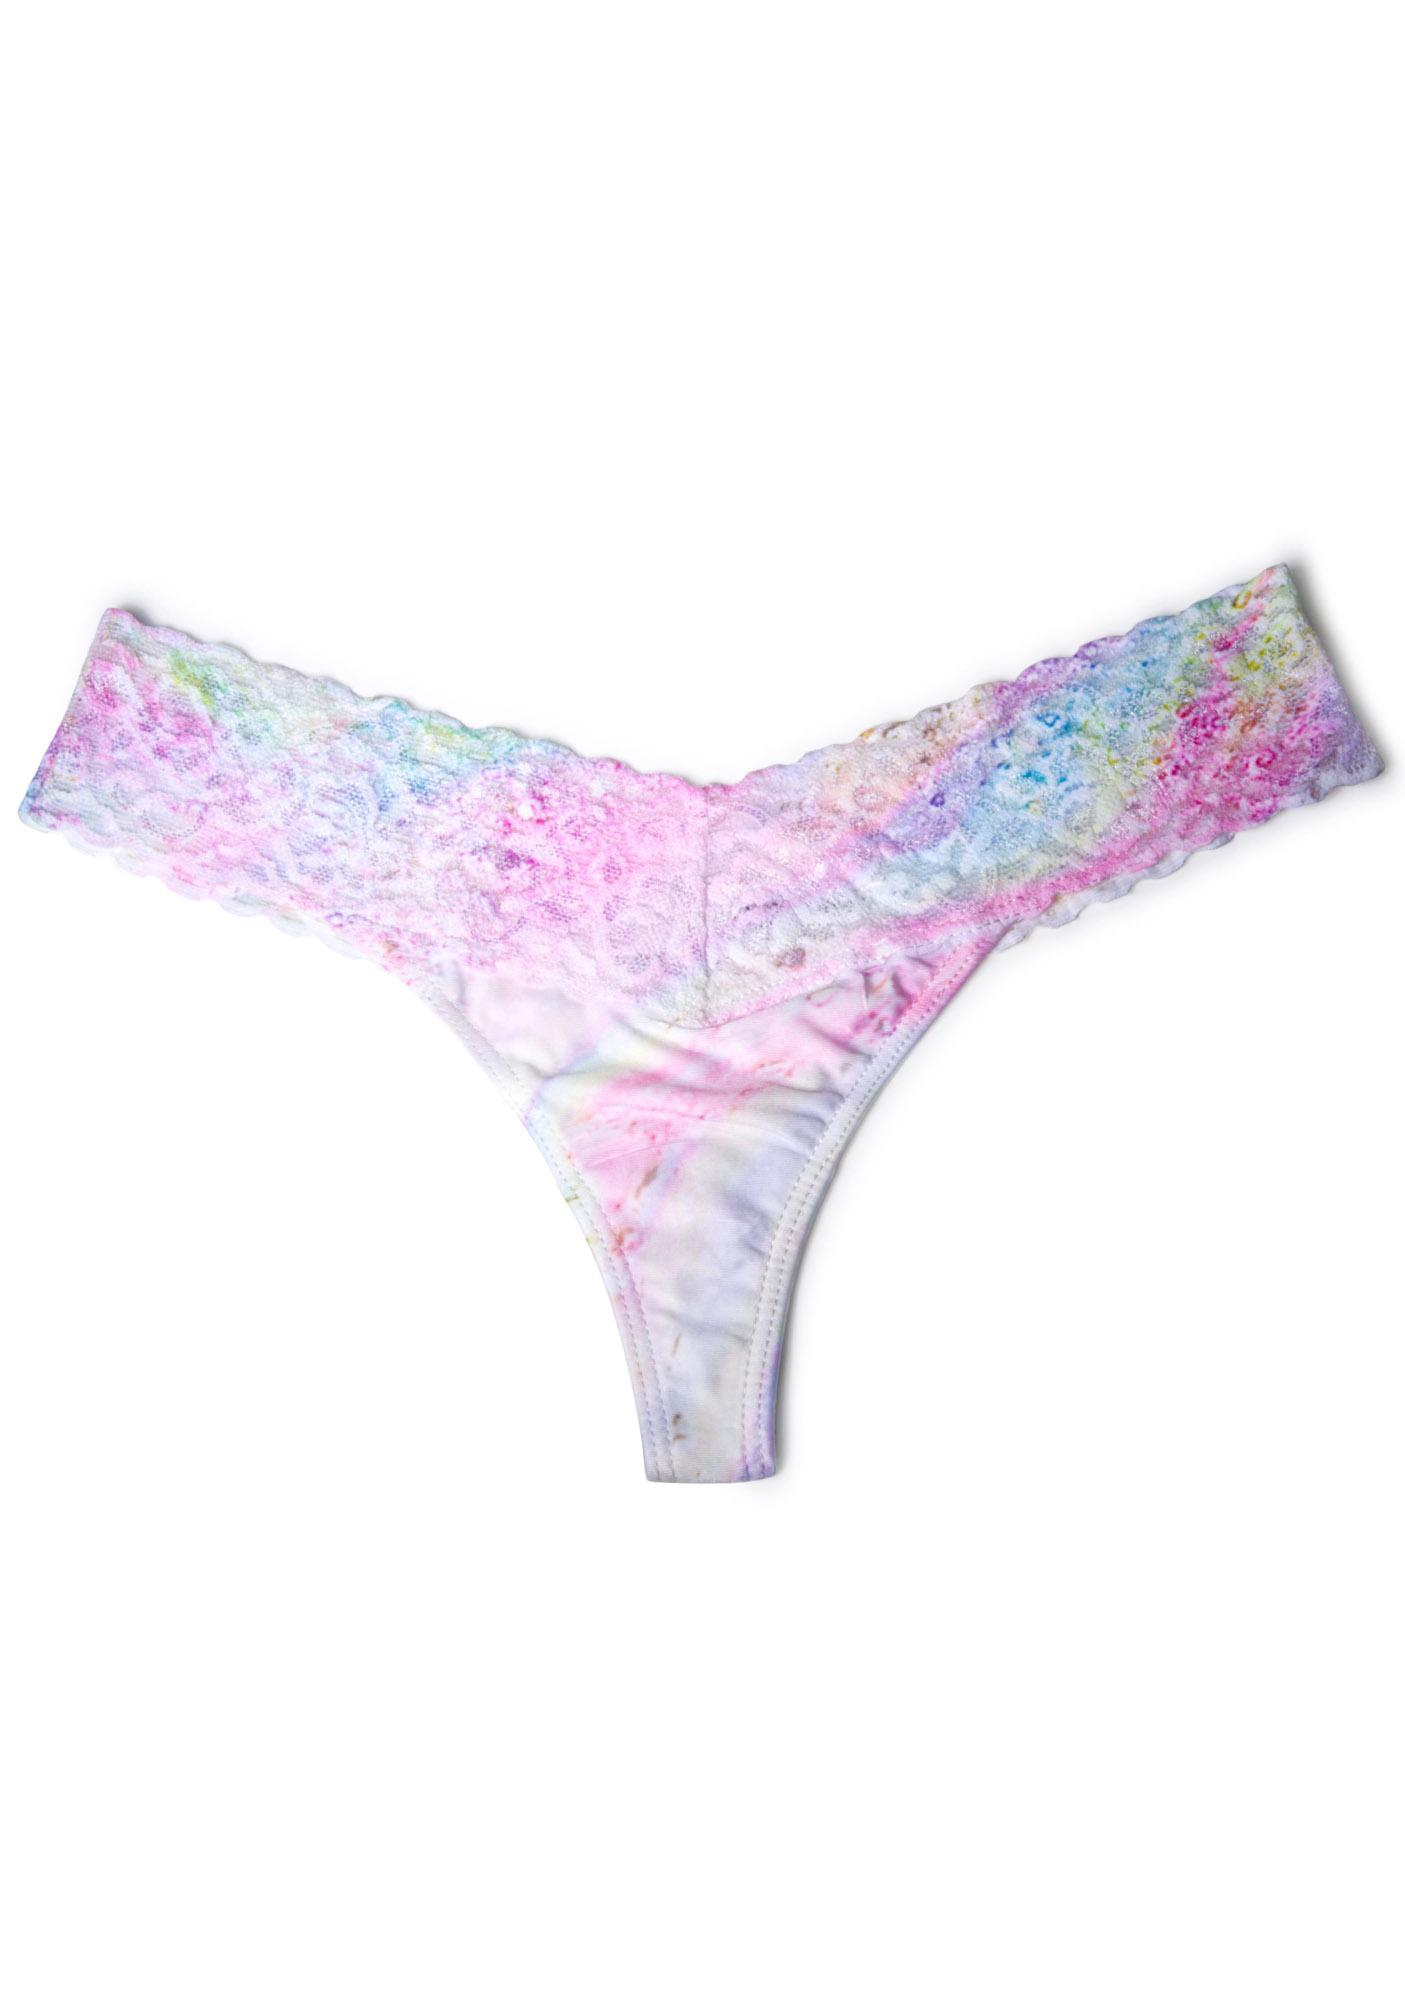 Private Arts Snow Queen Thong